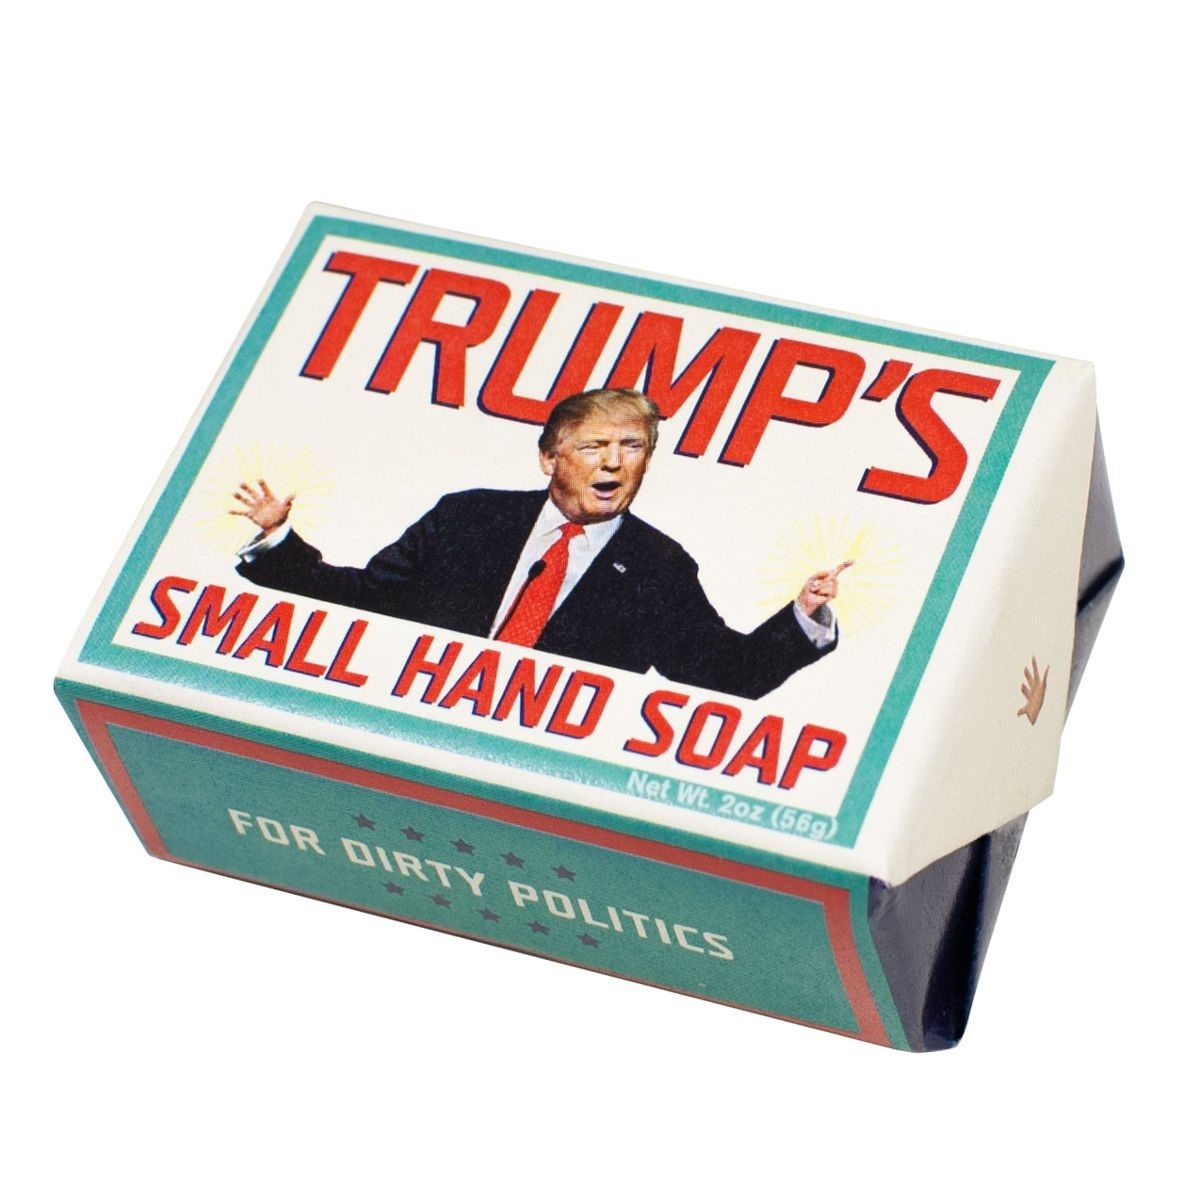 Witzige Trump´s Little Hands Seife